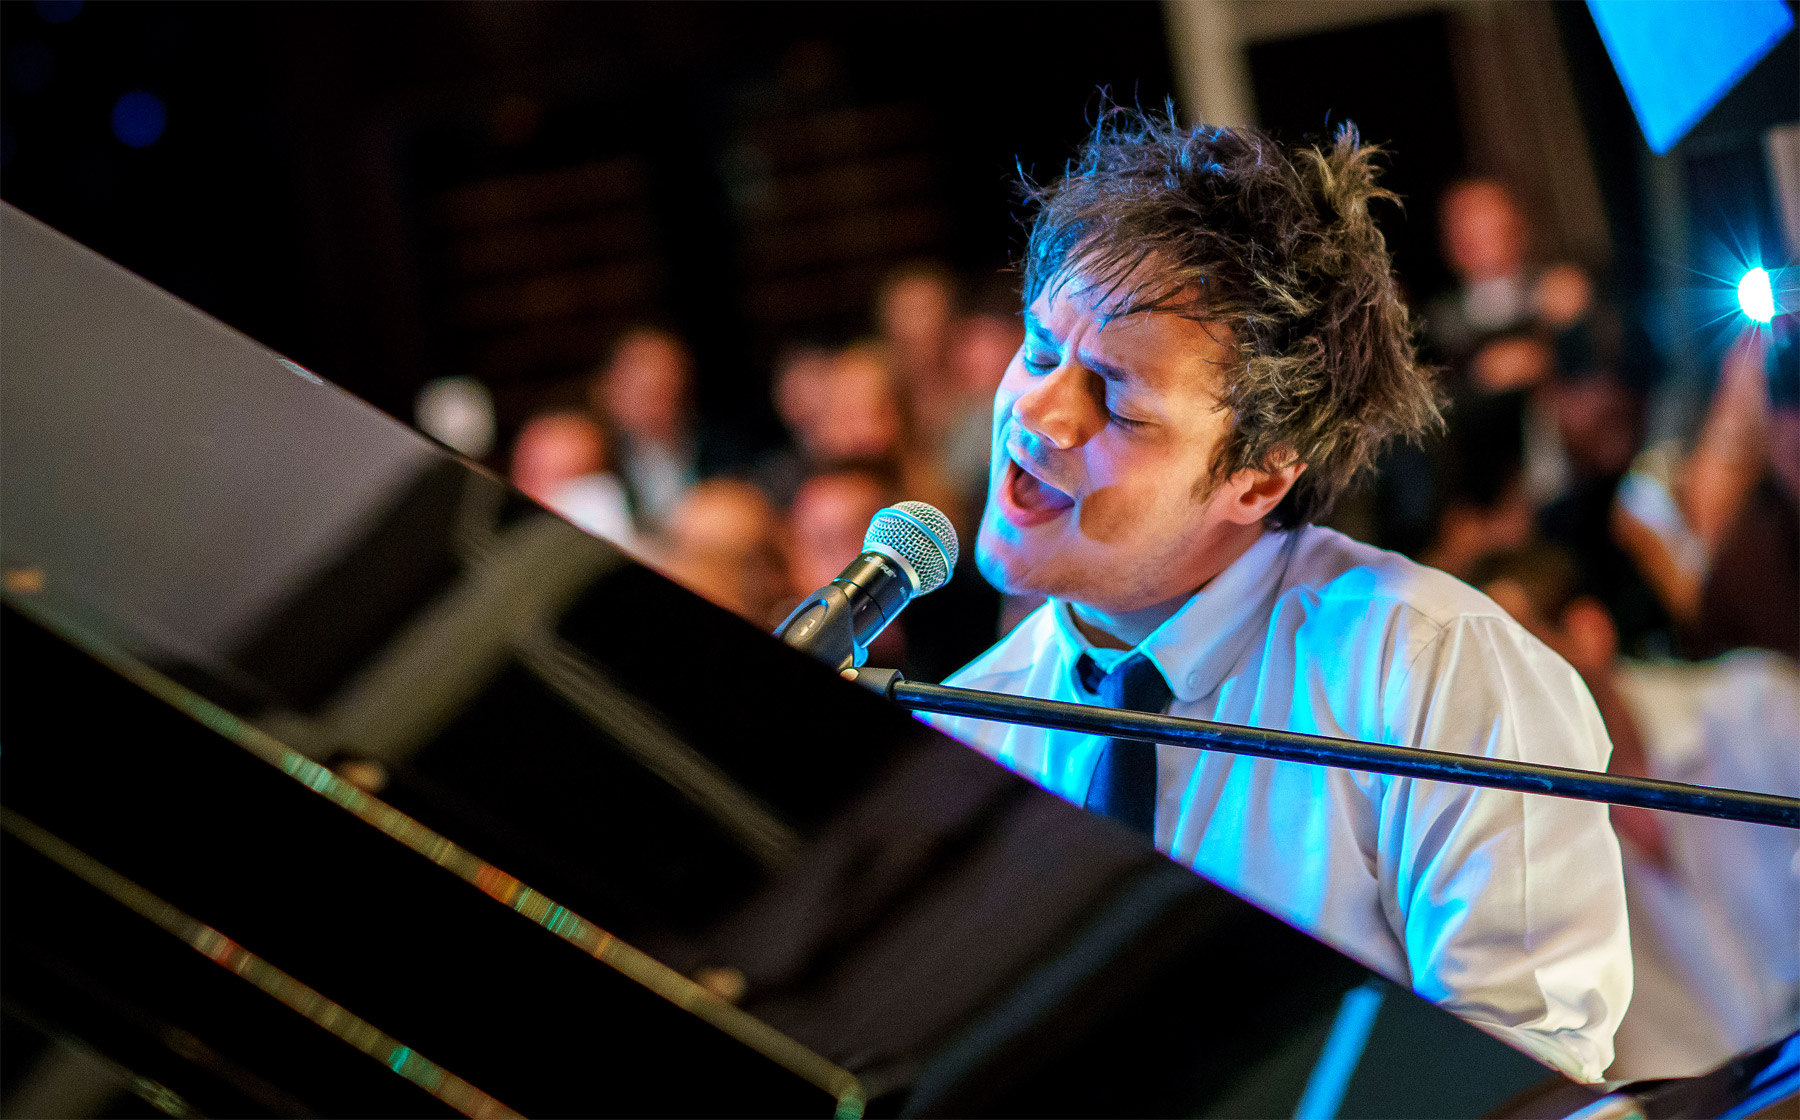 A Jazz-Filled Evening With Jamie Cullum At The St. Regis Singapore